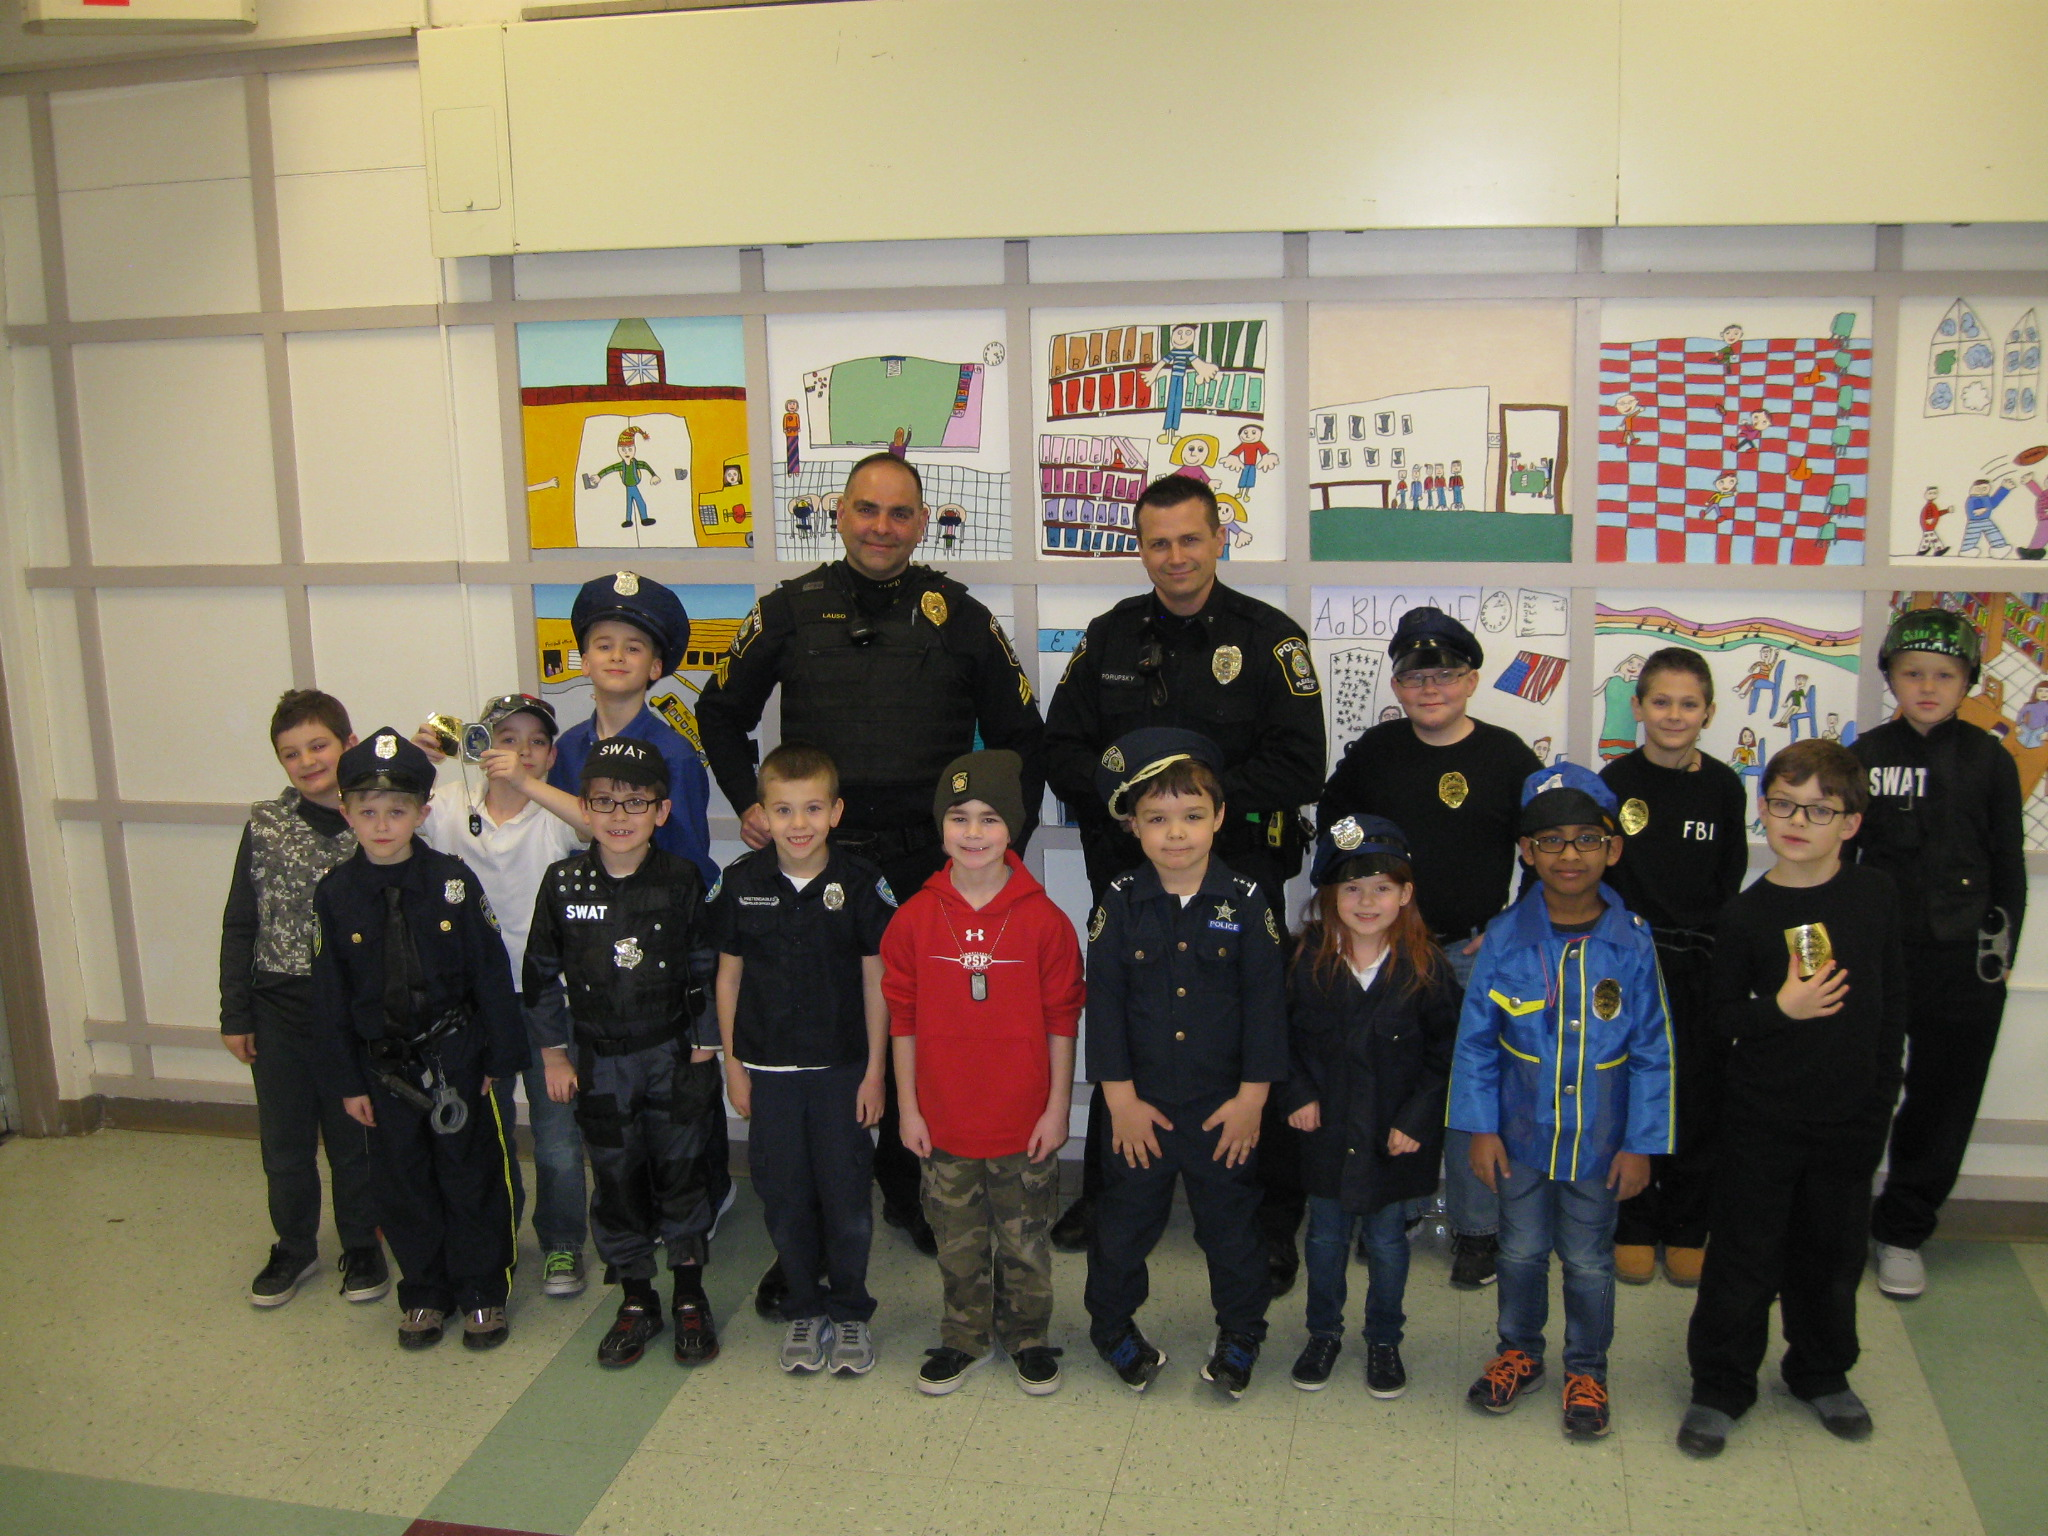 Elem dress for success 3-4-16 - police costumes